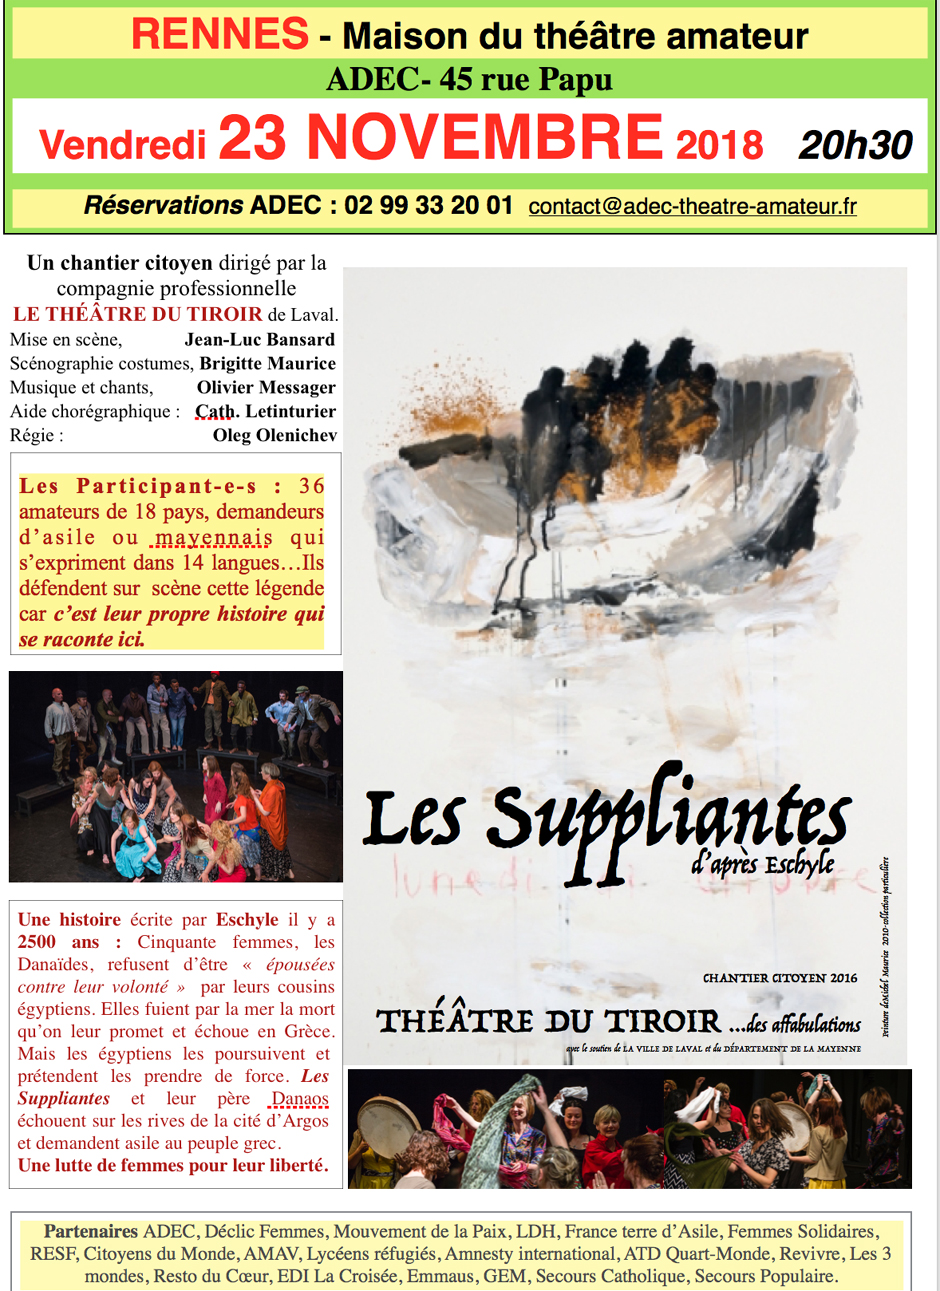 Les suppliantes ADEC Rennes 23 novembre 2018